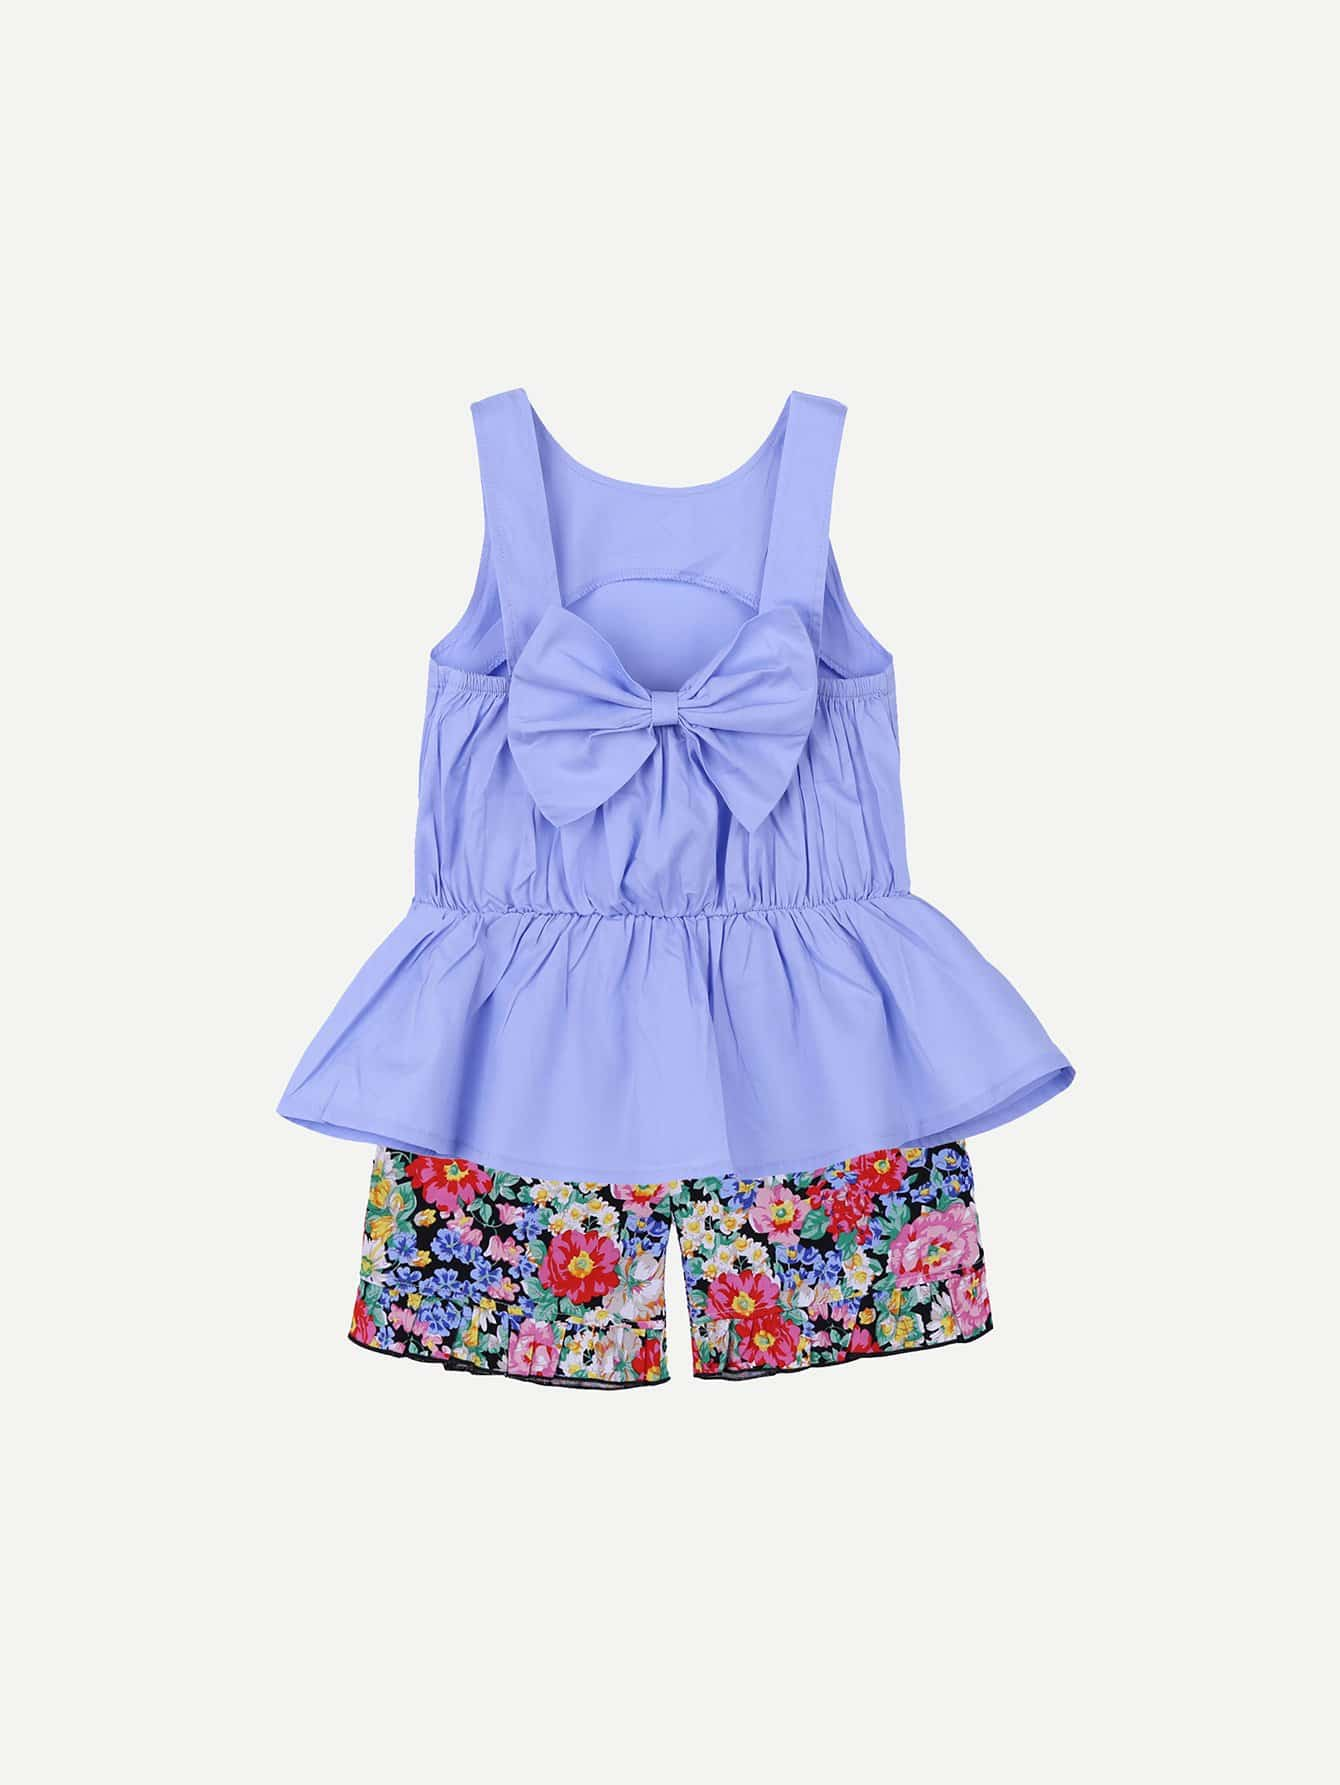 Girls Bow Tie Ruffle Hem Blouse With Calico Print Shorts